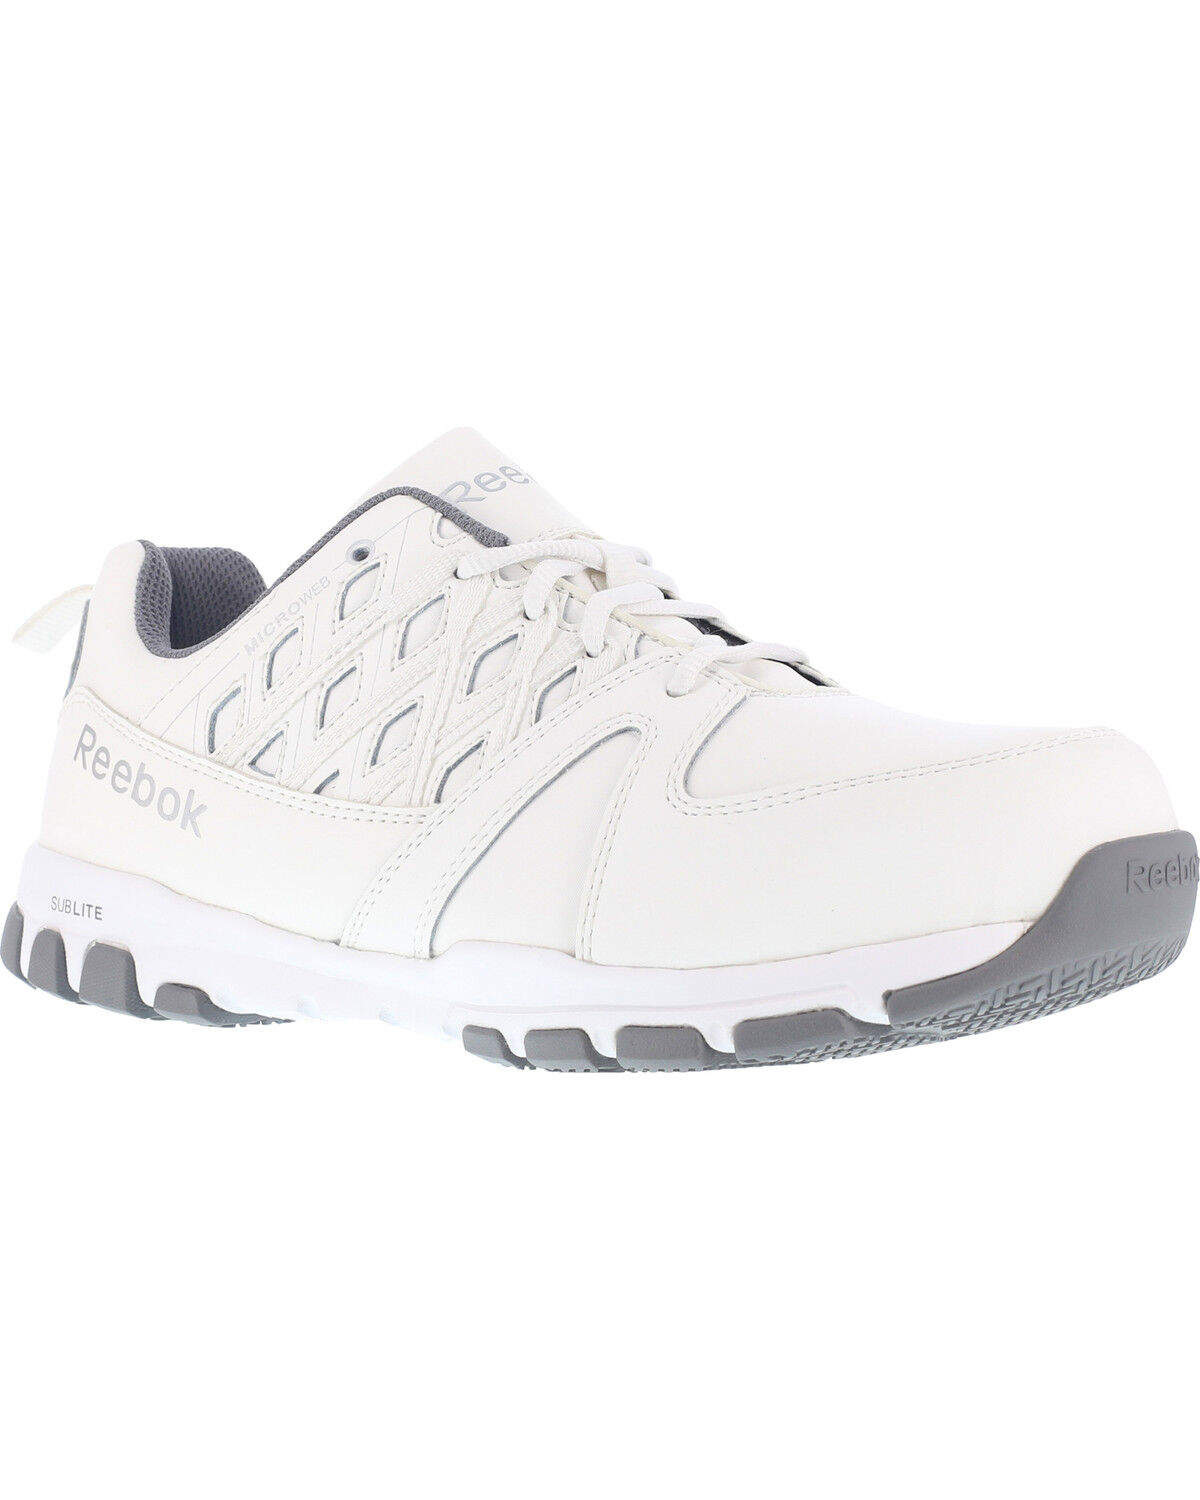 Athletic Oxford Shoes - Steel Toe